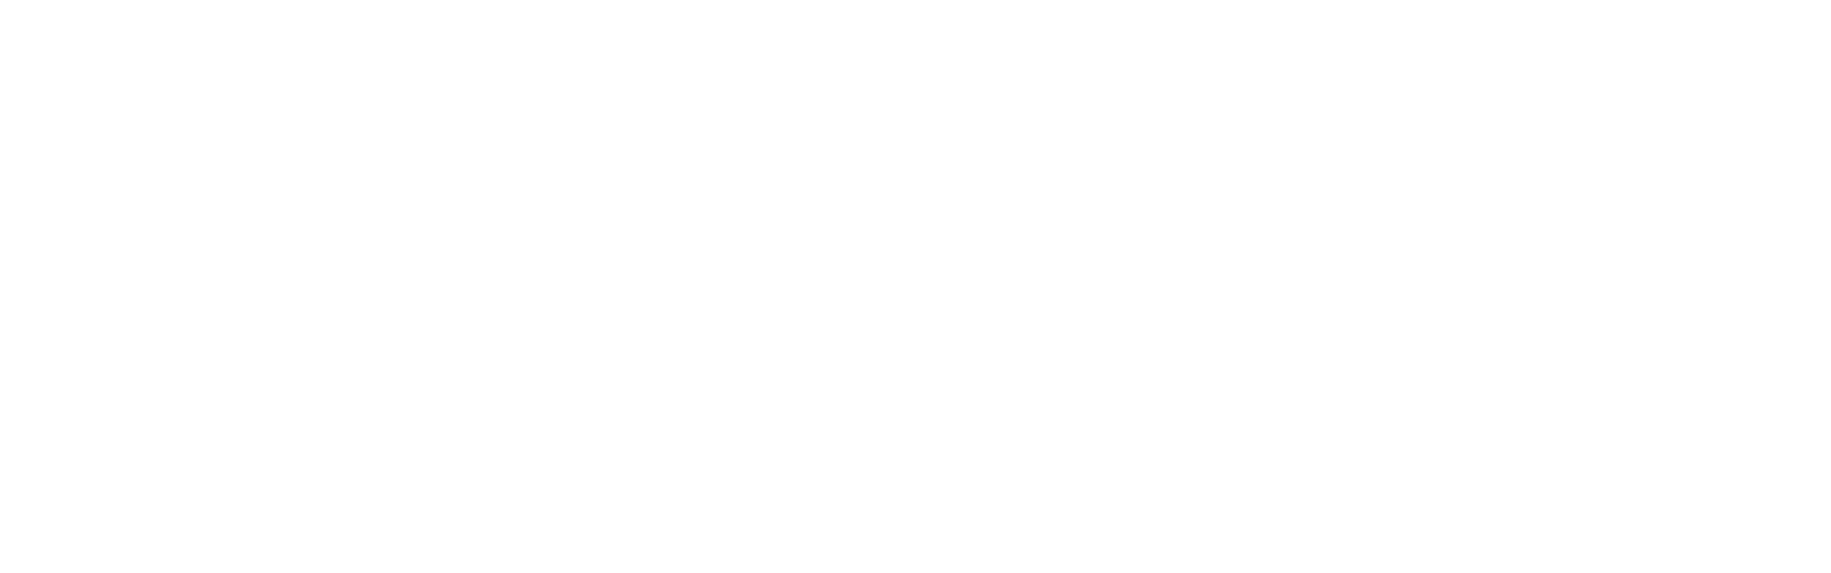 Netherby Meats Online Store